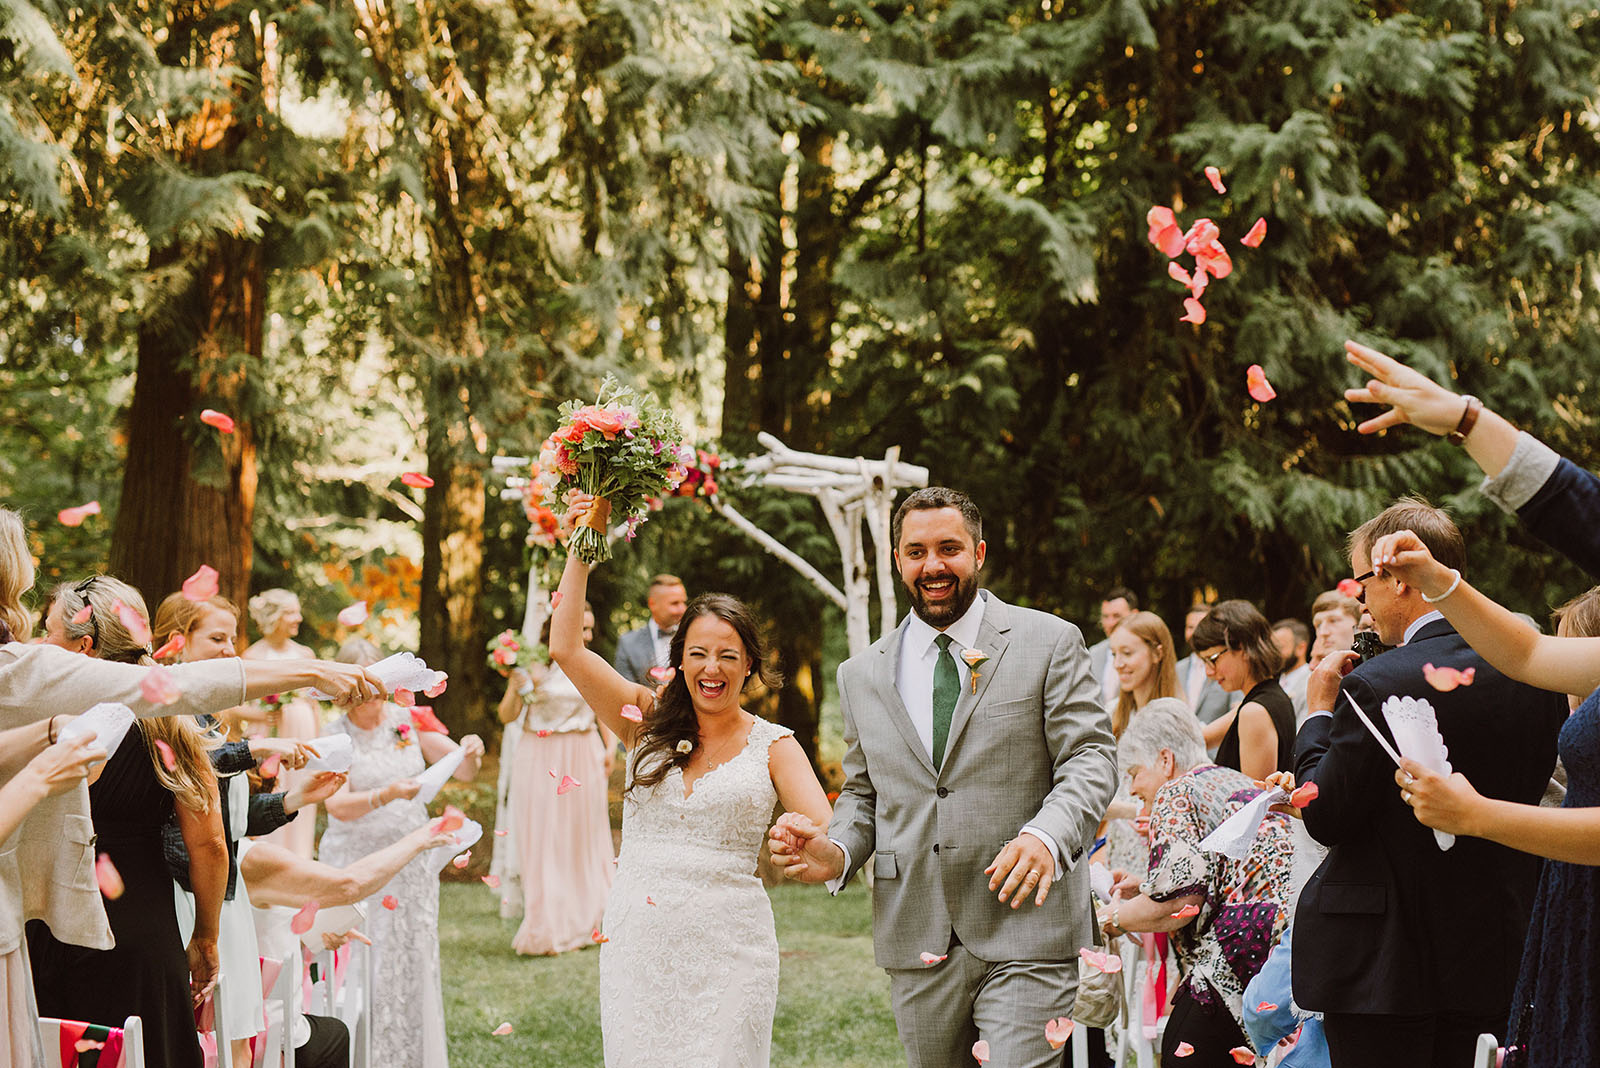 Bride and Groom being showered with flower petals at a Cedarville Lodge Wedding in Gresham, OR